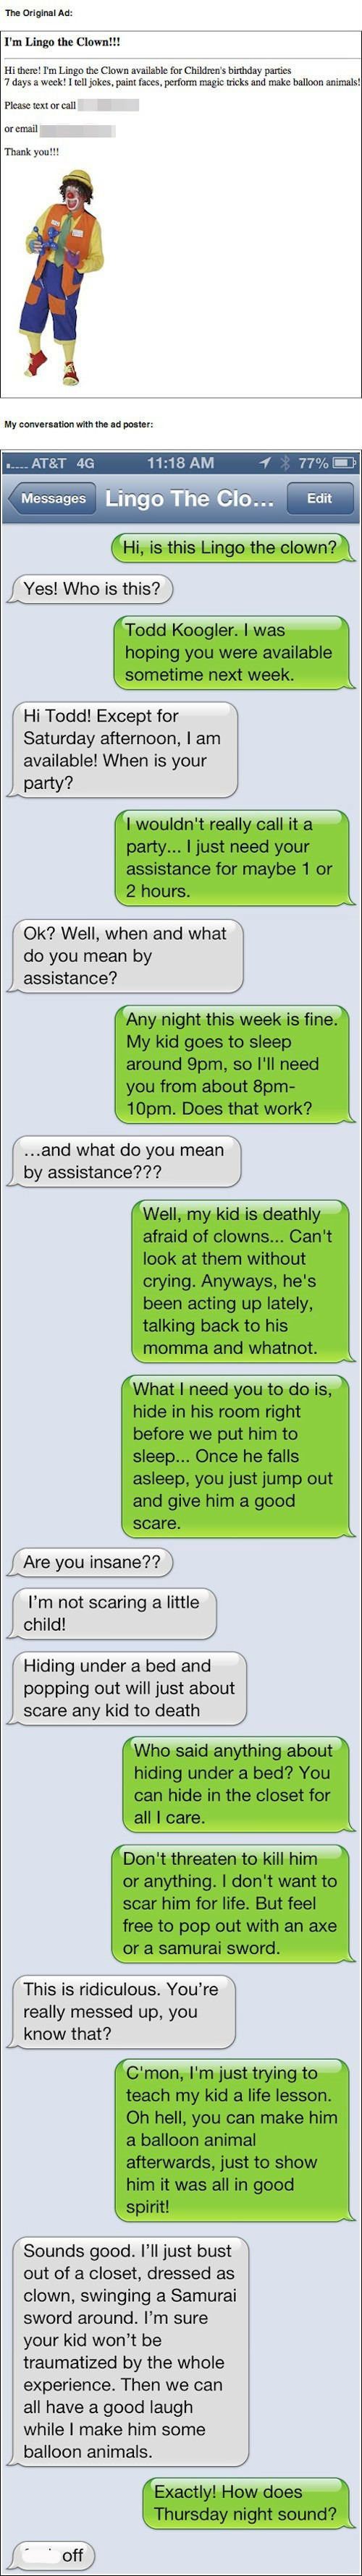 Why is the clown named lingo? I'm not sure if that means something in clown lingo.